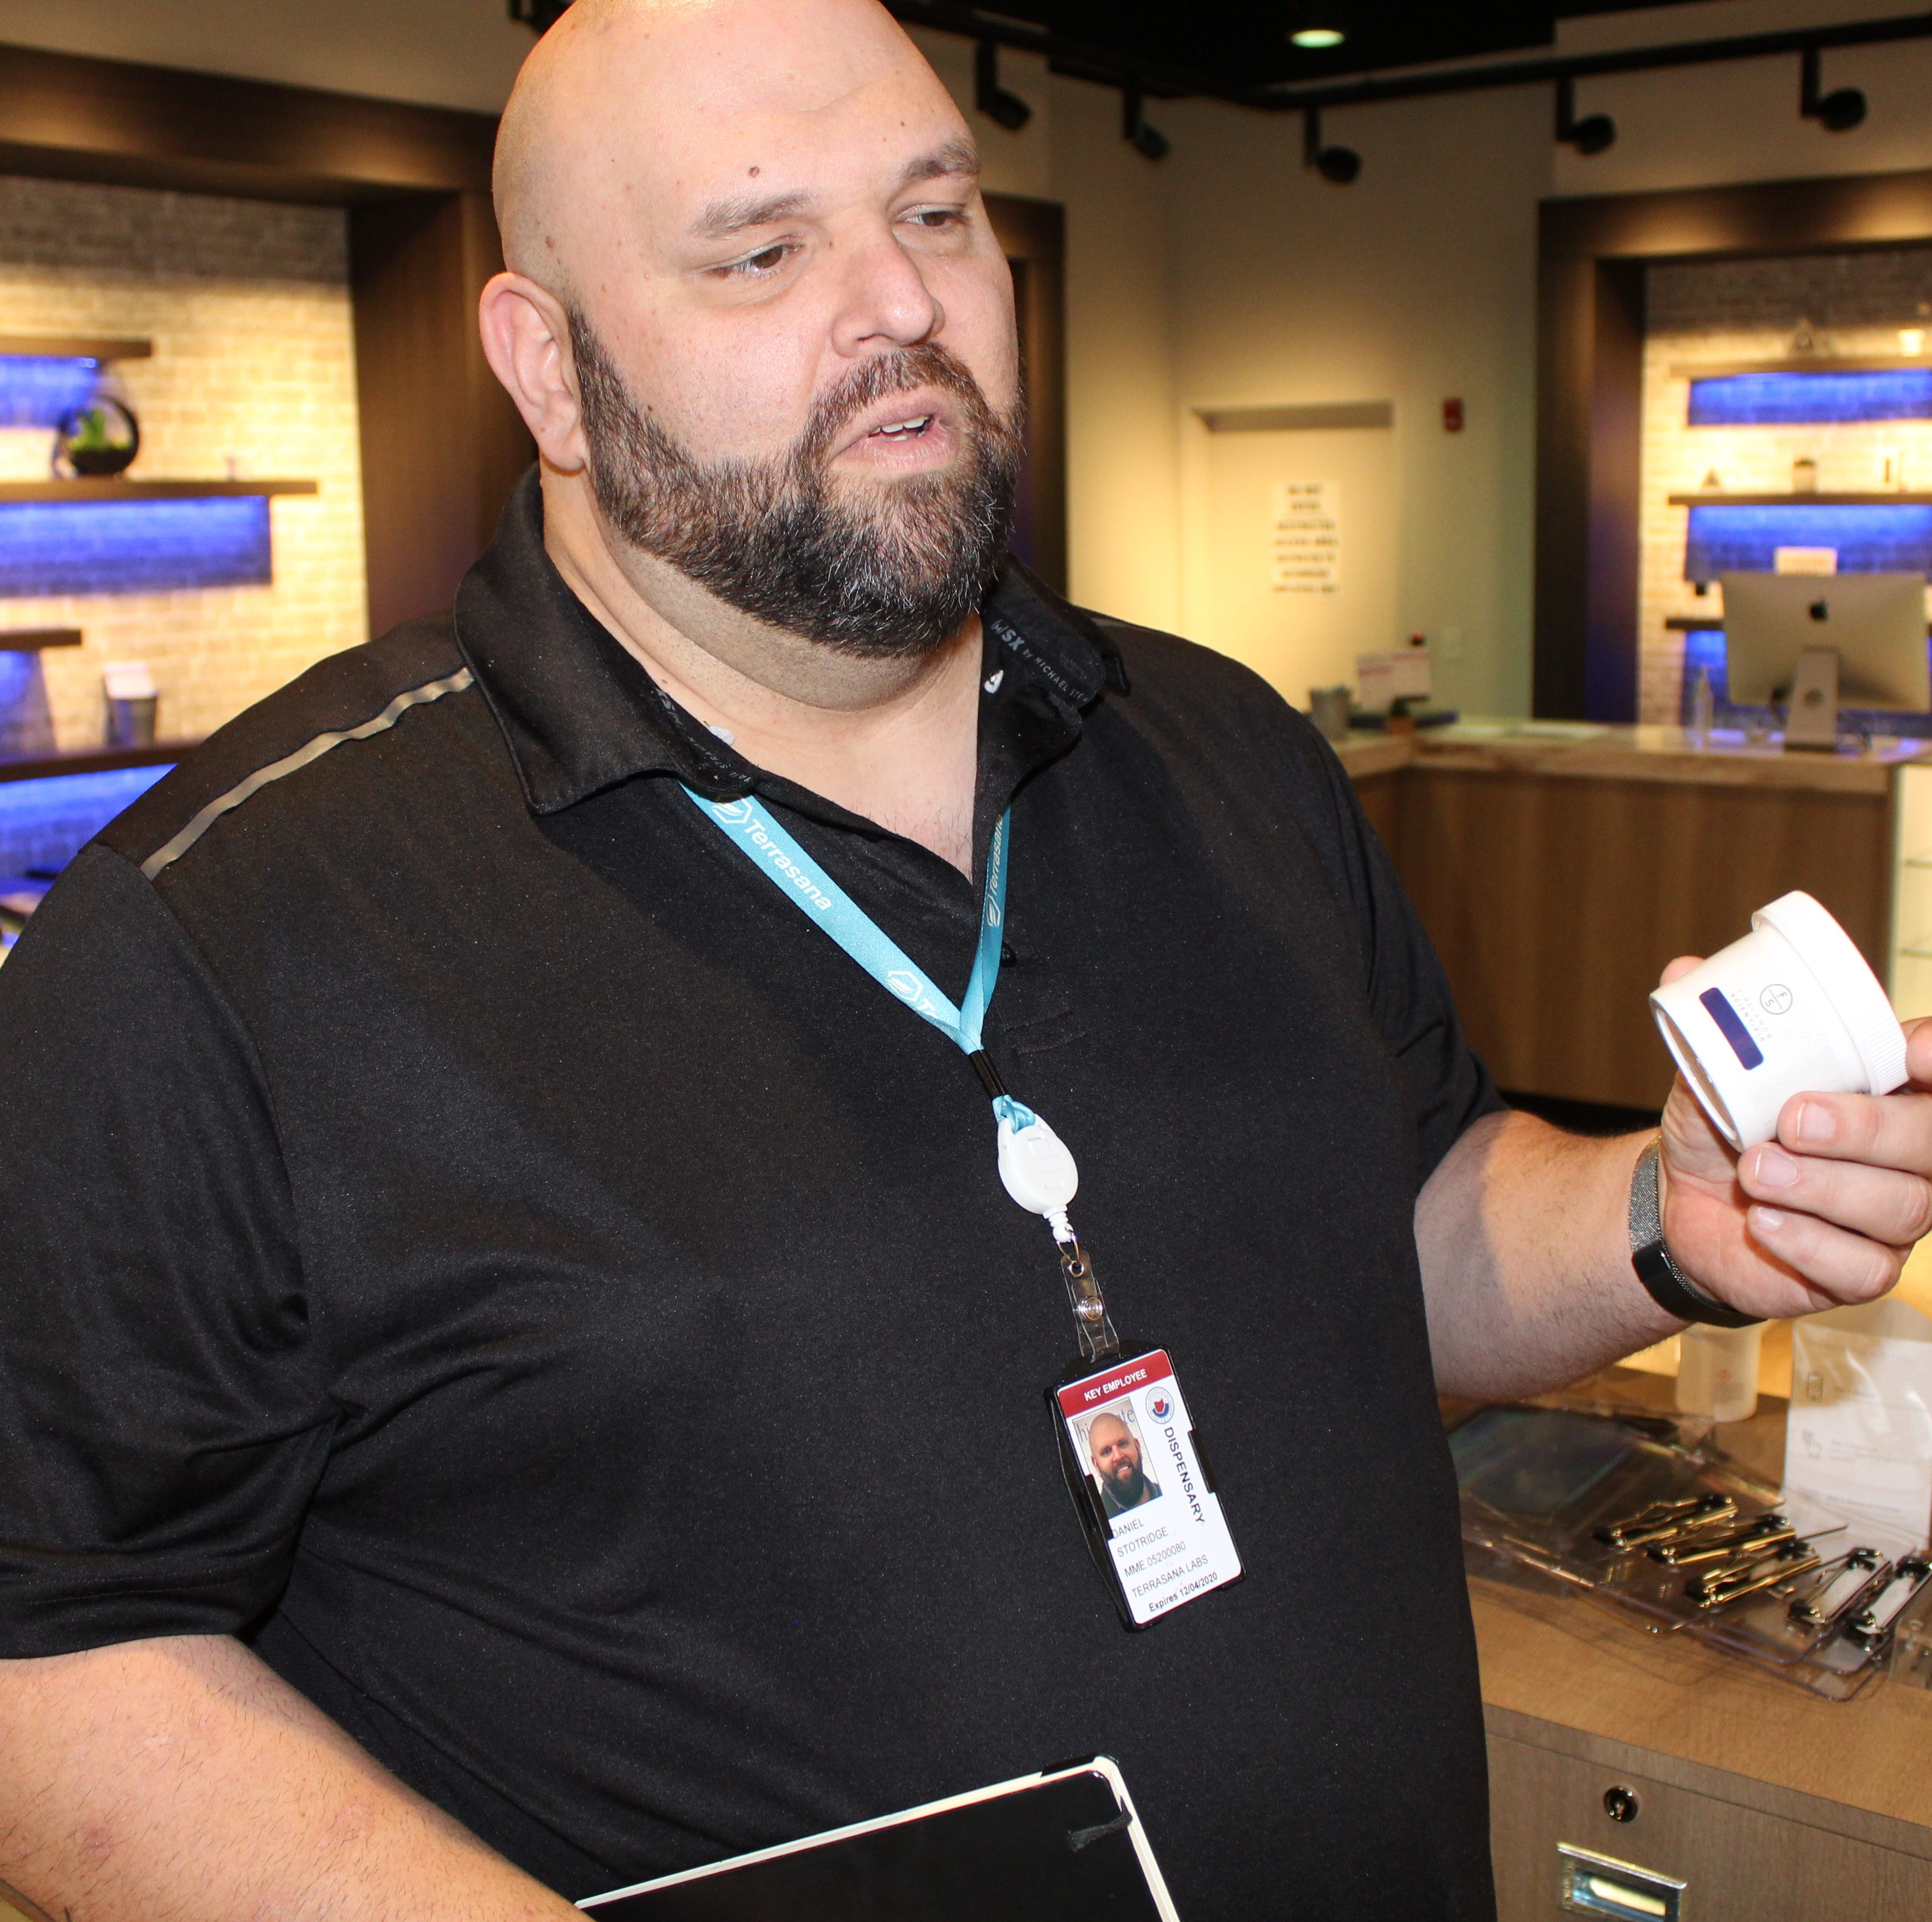 Fremont medical marijuana dispensary getting ready for big day